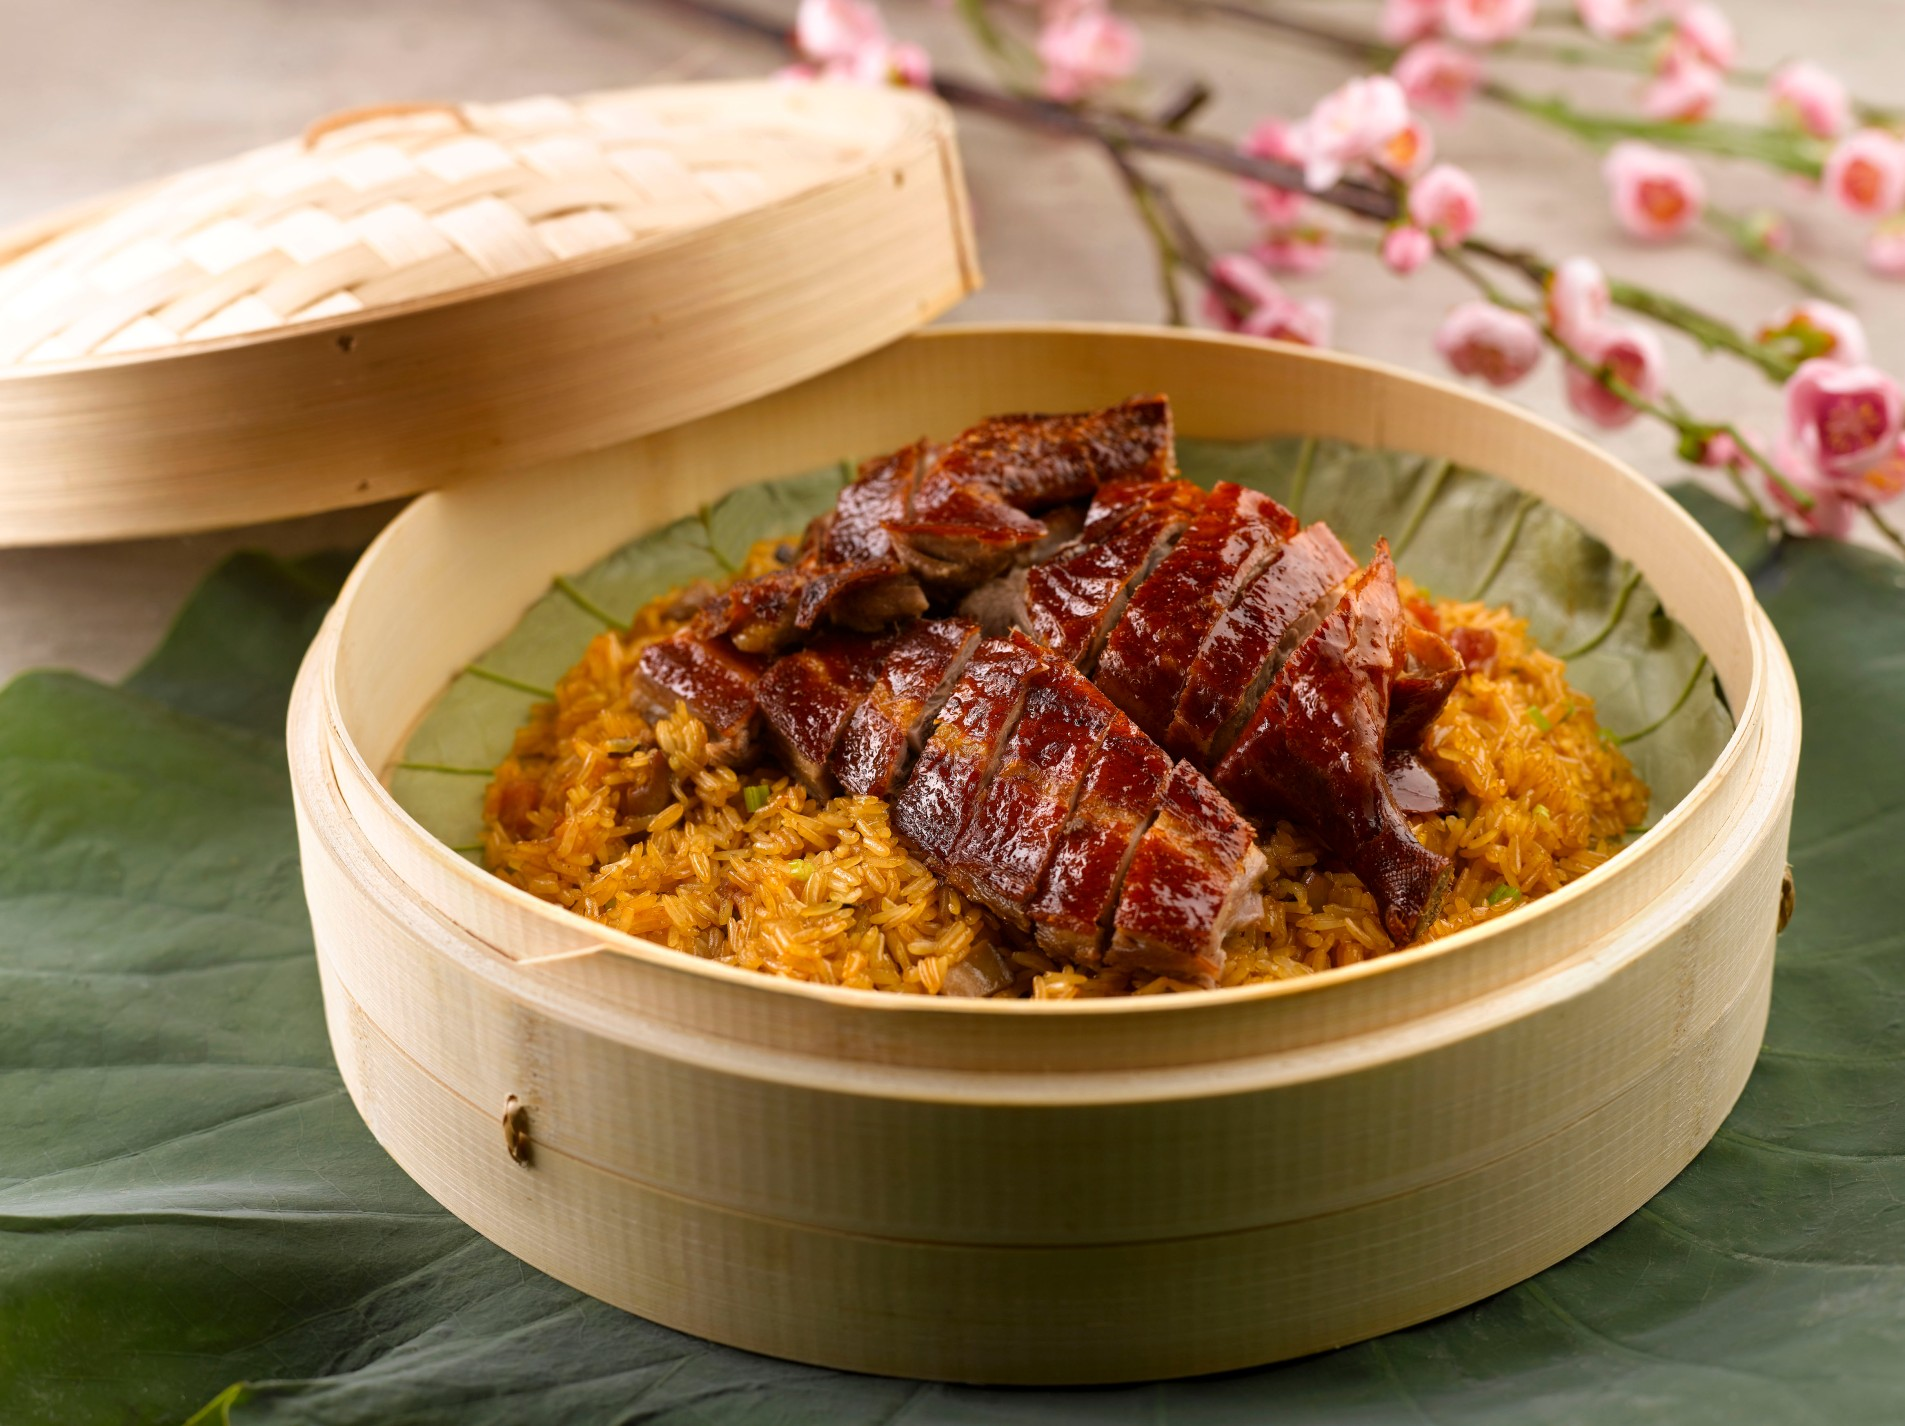 Crystal Jade CNY 2016 - Kitchen Stir-fried Glutinous Rice with Roasted Duck